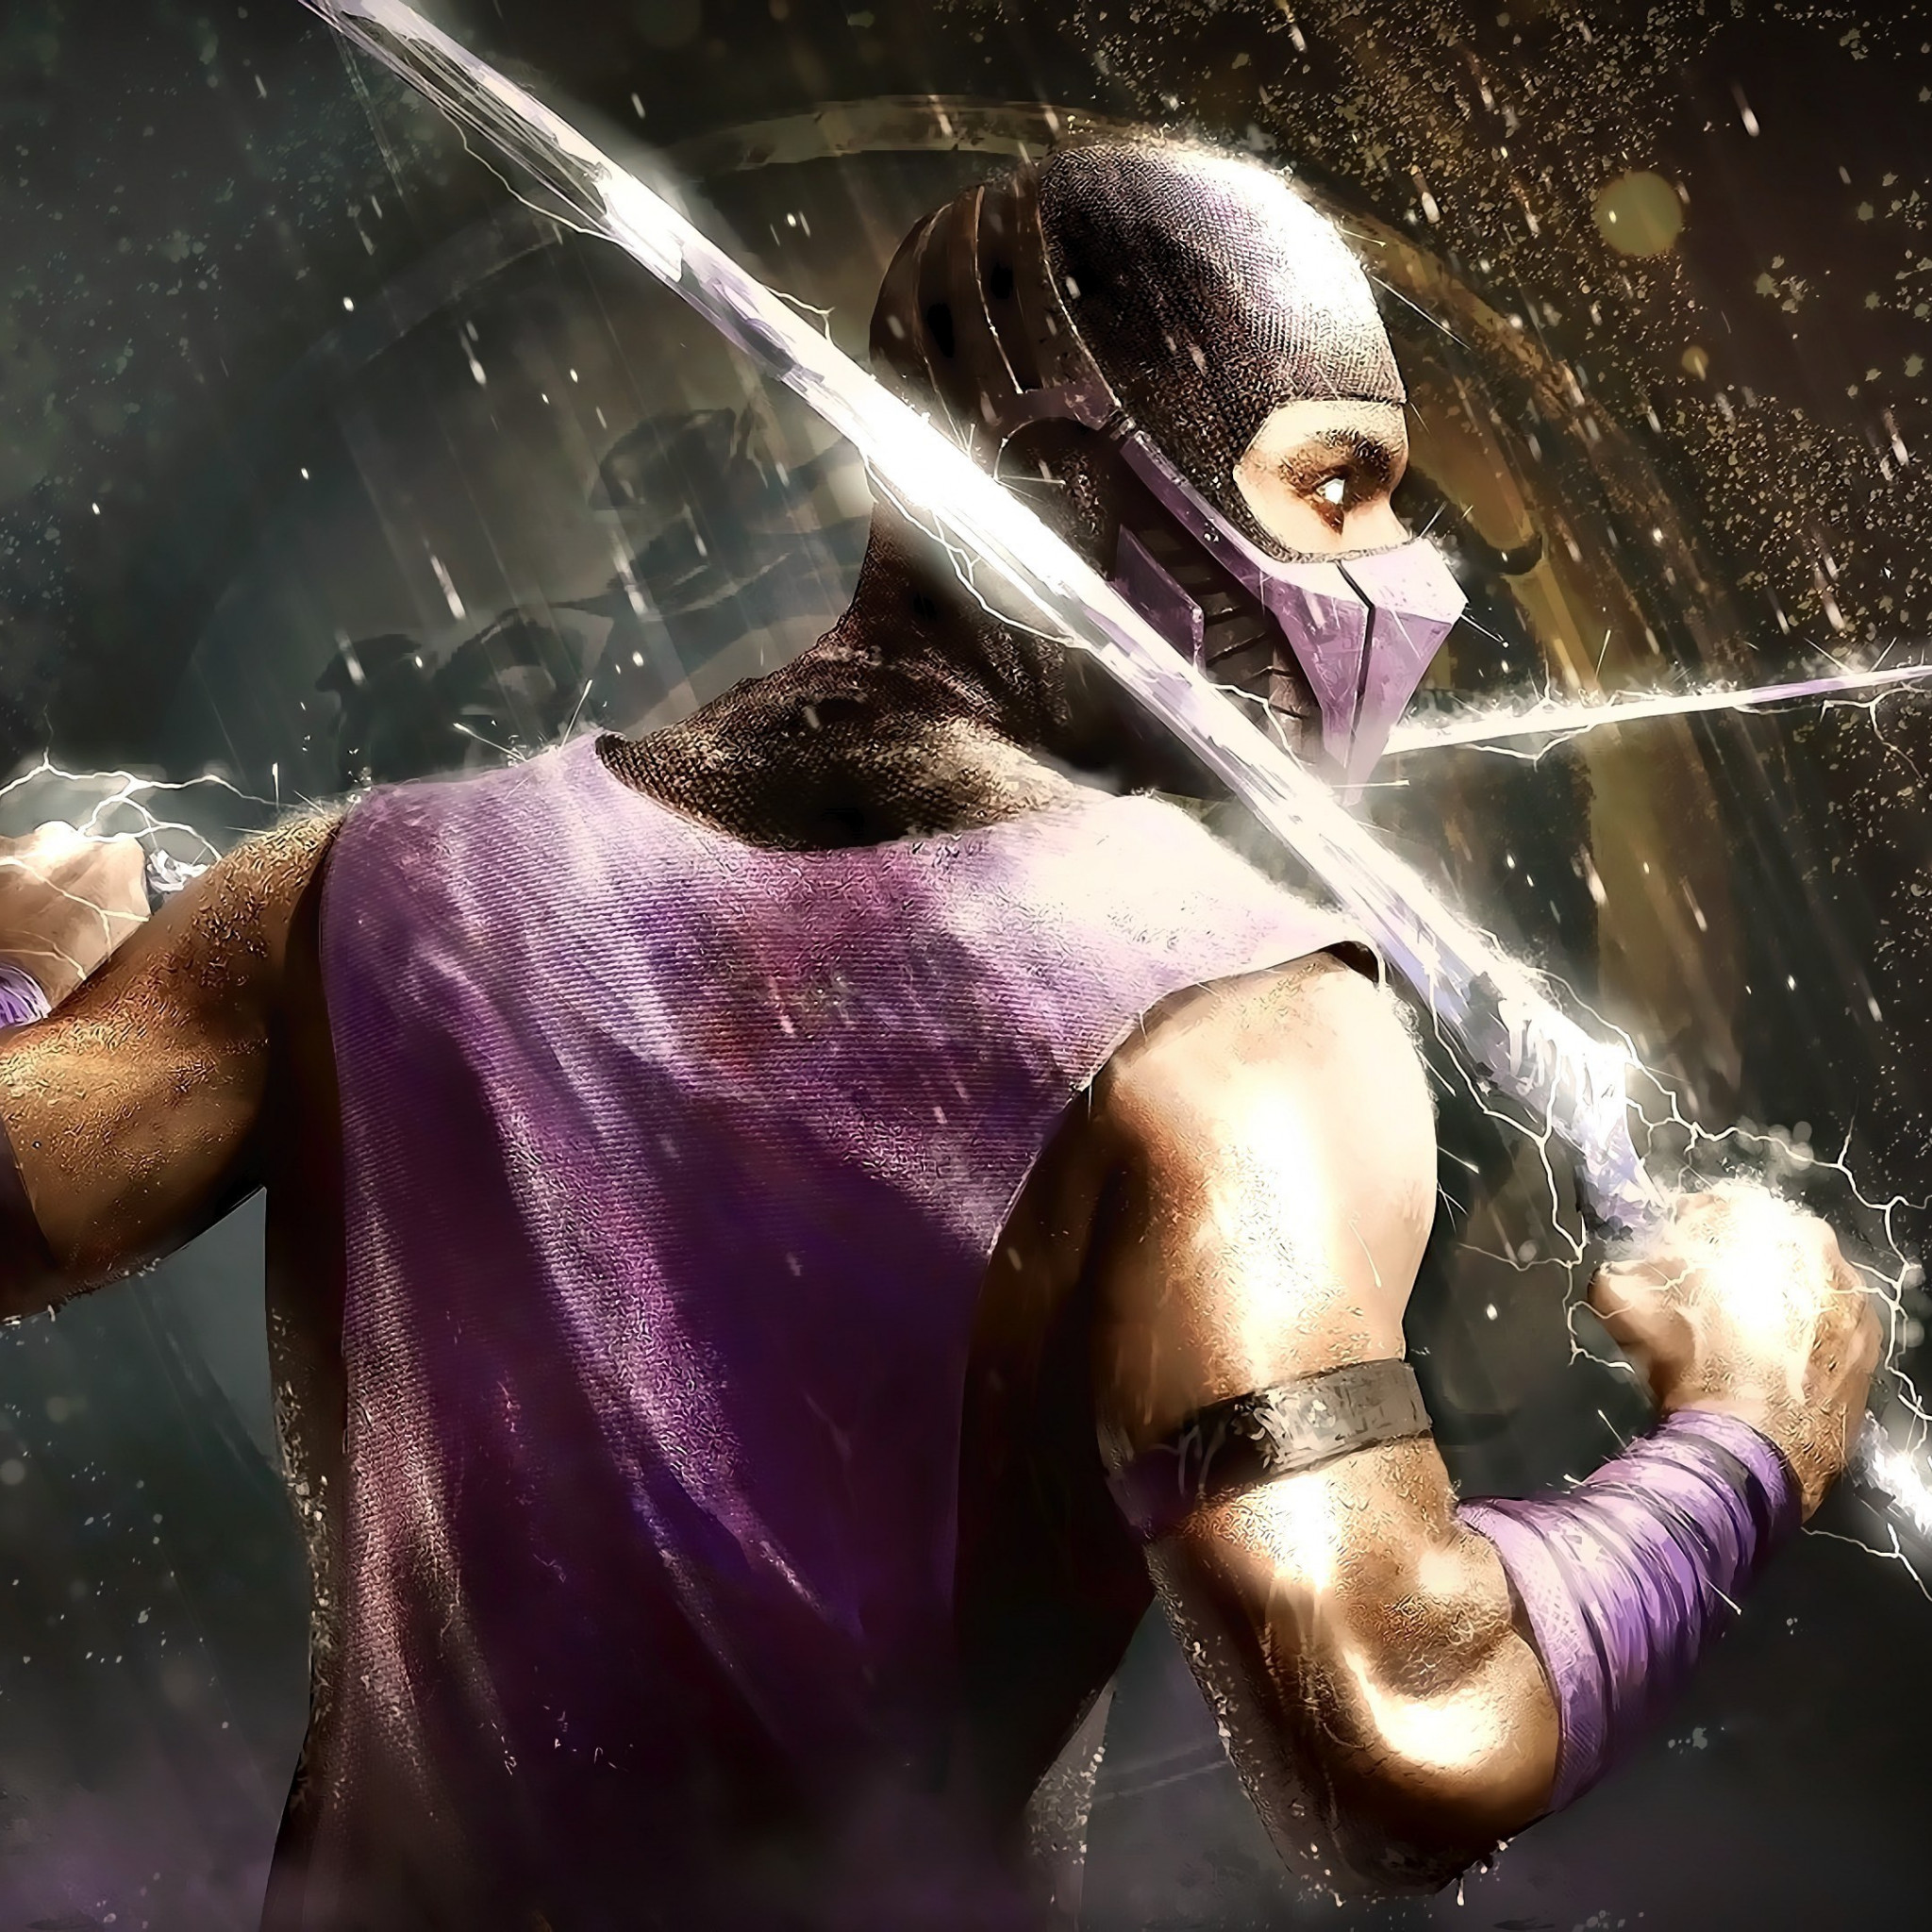 Scorpion from Mortal Kombat | 2048x2048 wallpaper